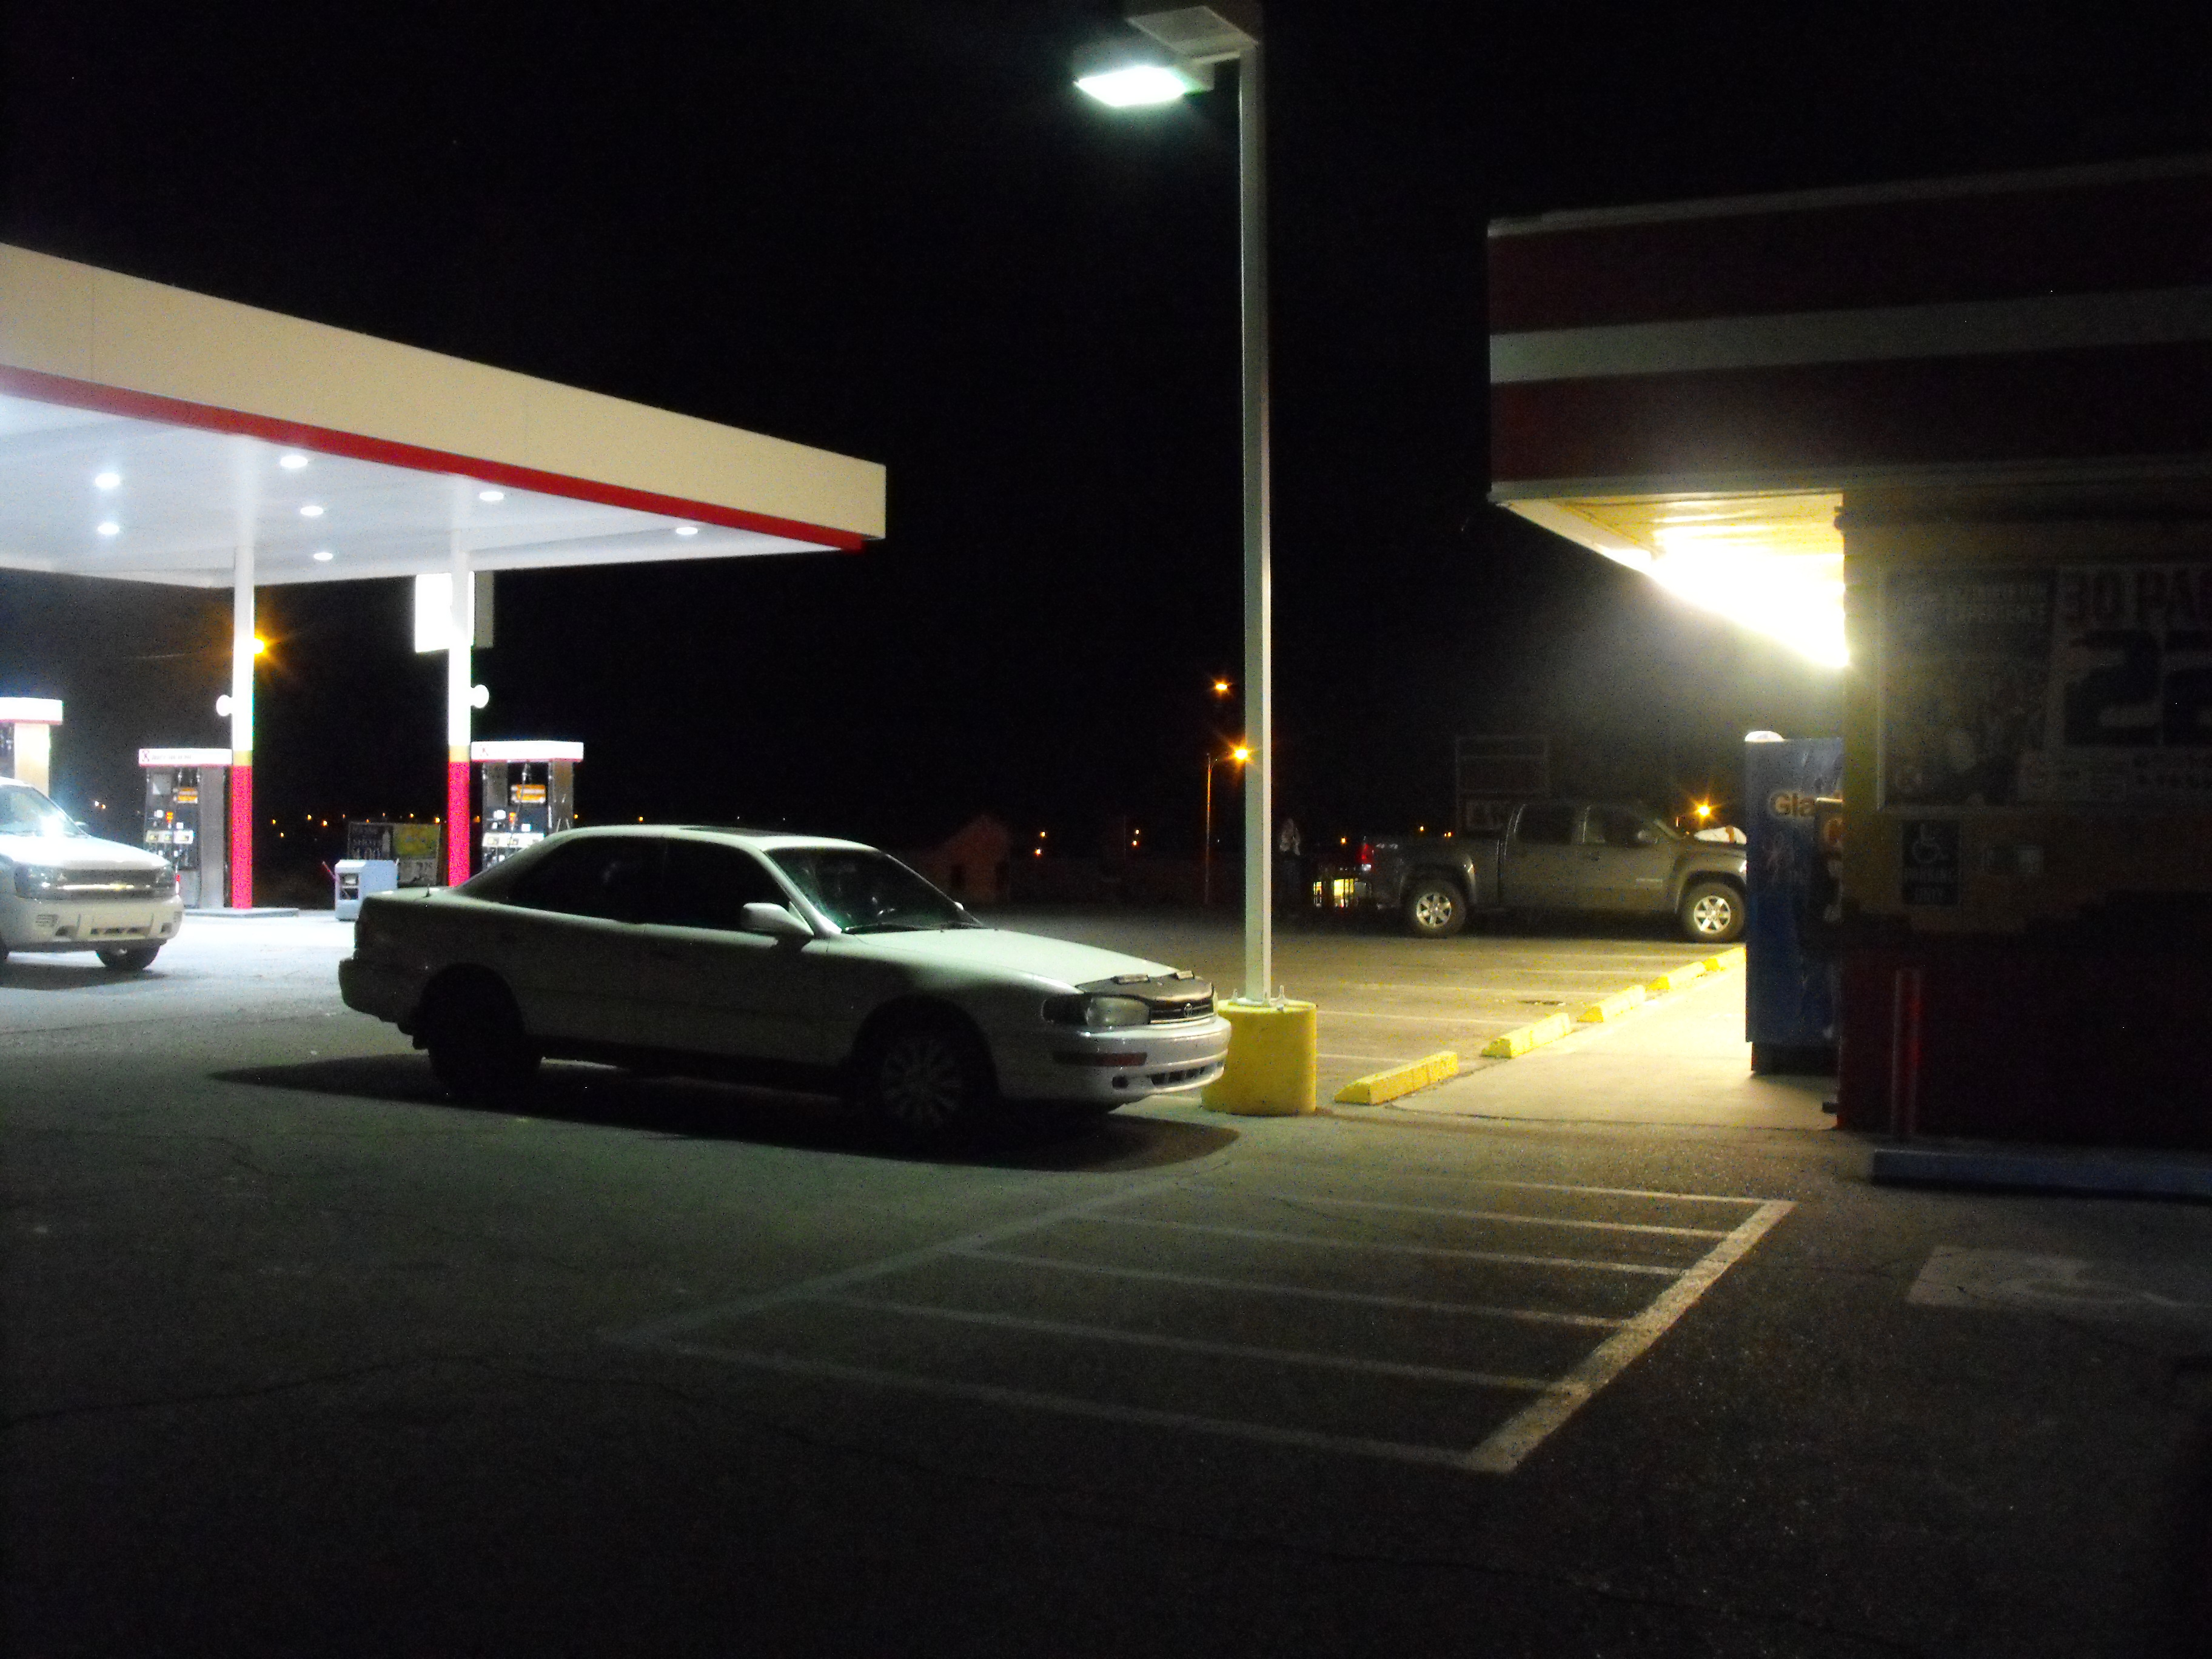 The Real Story Of Gas Stations Takes Place At Night Electrica In The Desert